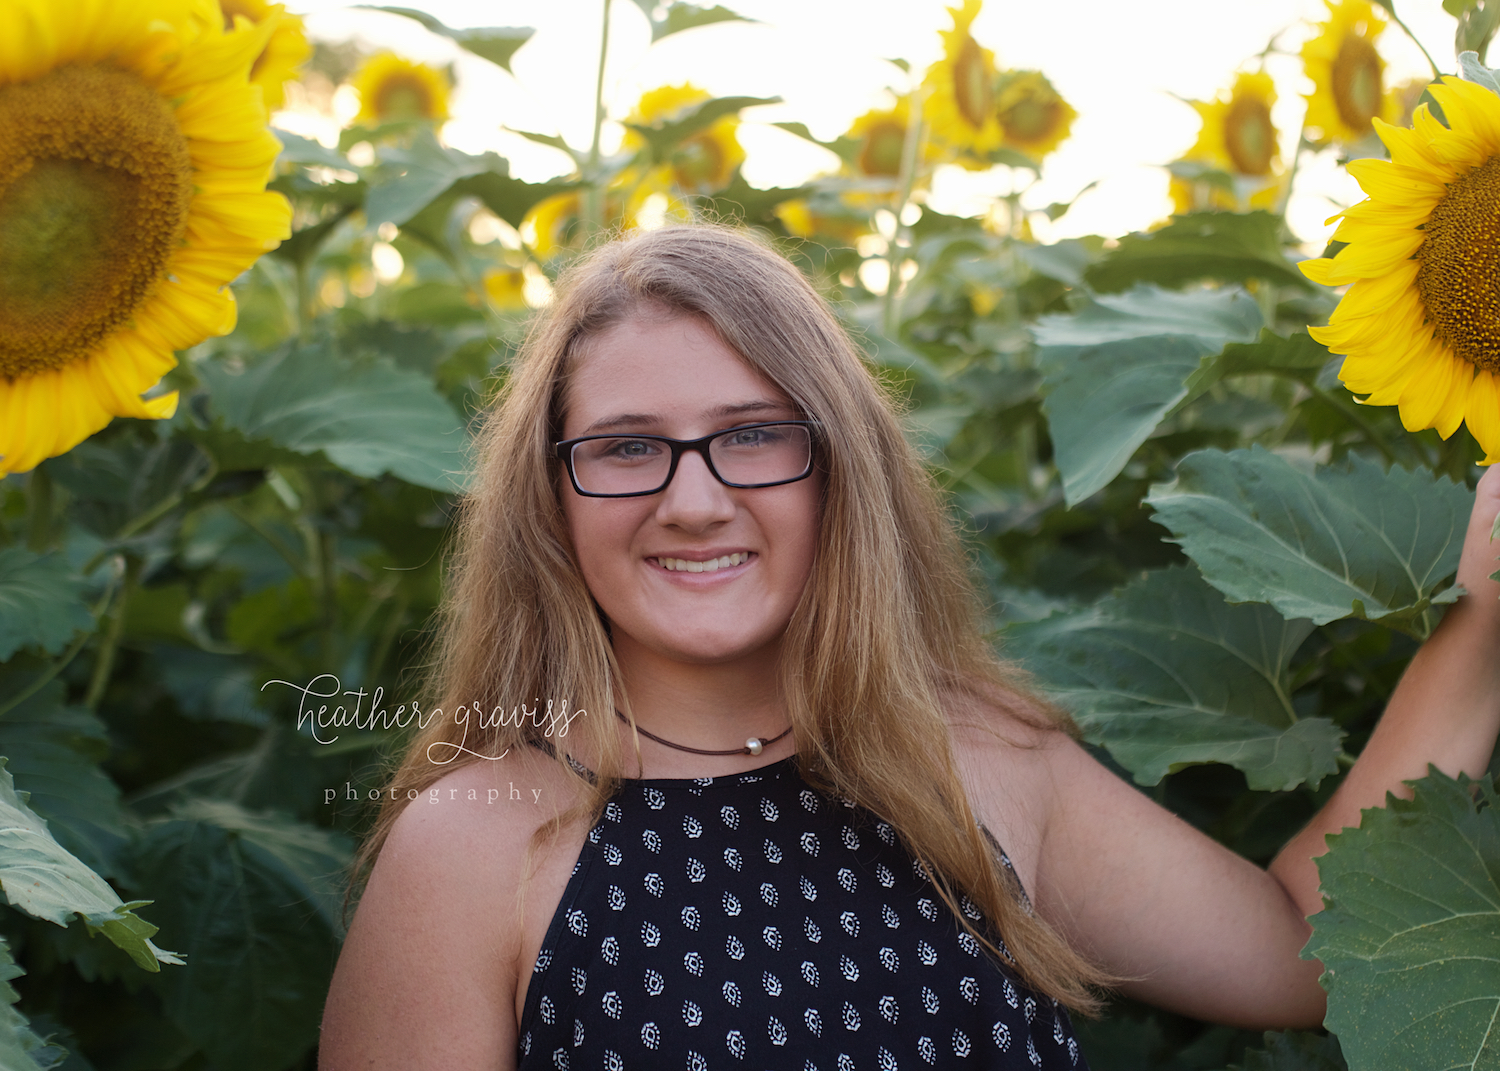 nashville middle tn teen tween senior 086.jpg